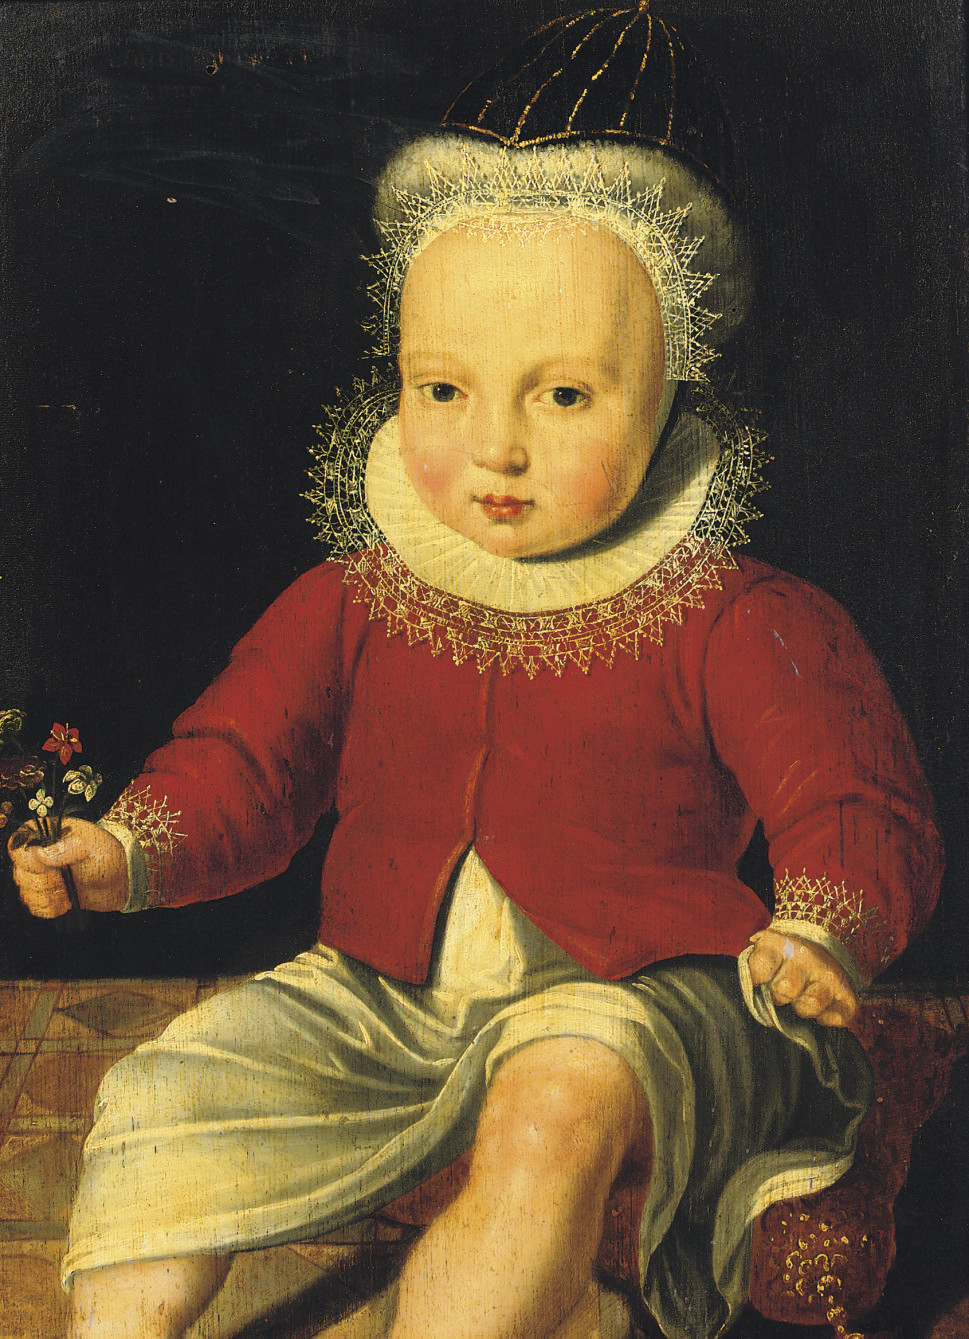 Portrait of a child, three-quarter-length, in a white dress and a red coat, seated on a pillow, holding a bunch of flowers